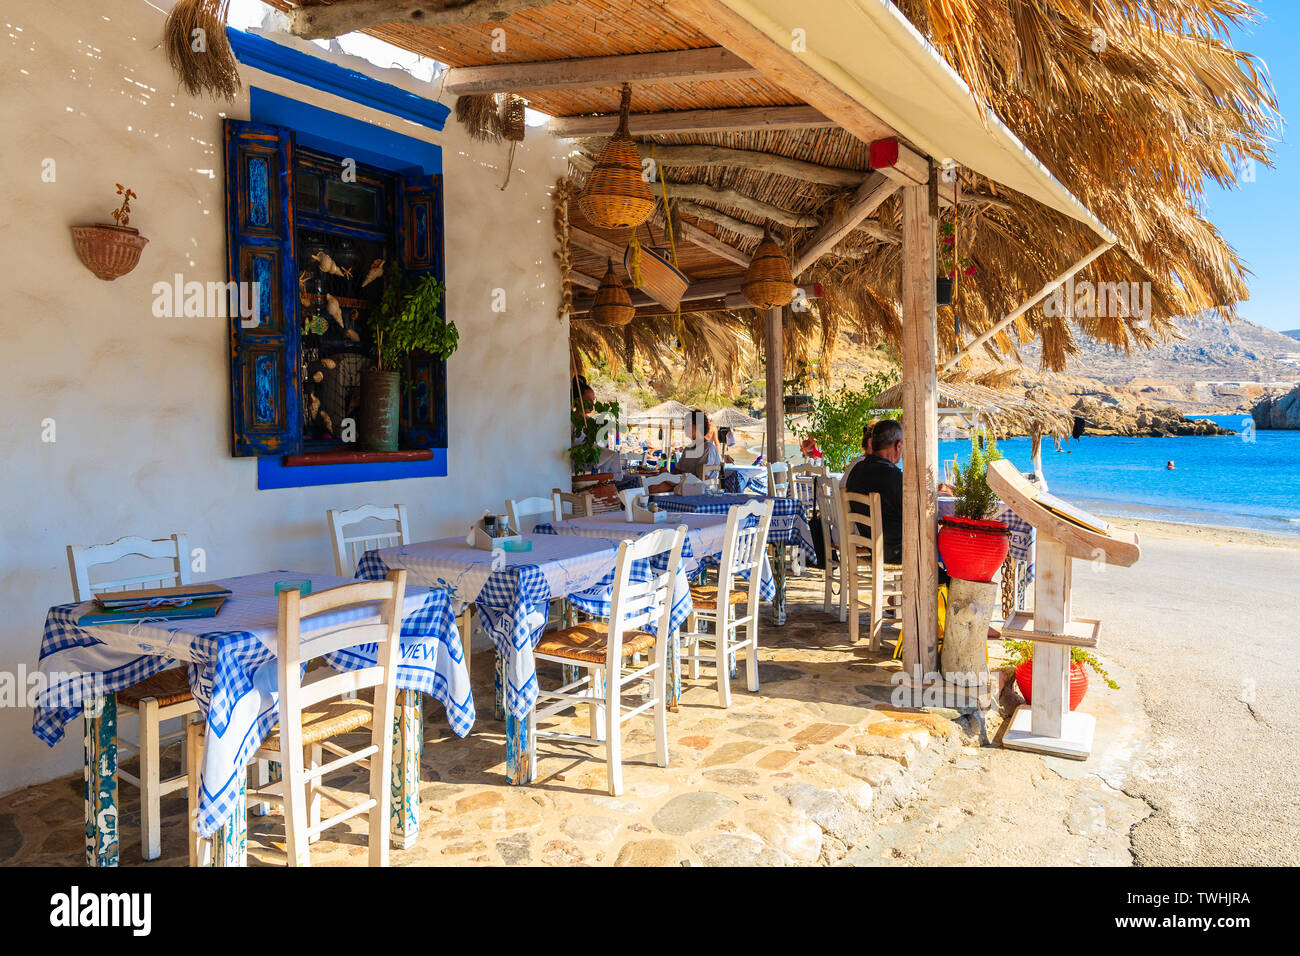 FINIKI PORT, KARPATHOS ISLAND - SEP 25, 2018: Typical Greek tavern in Finiki port on Karpathos island. Greece is very popular holiday destination in E Stock Photo